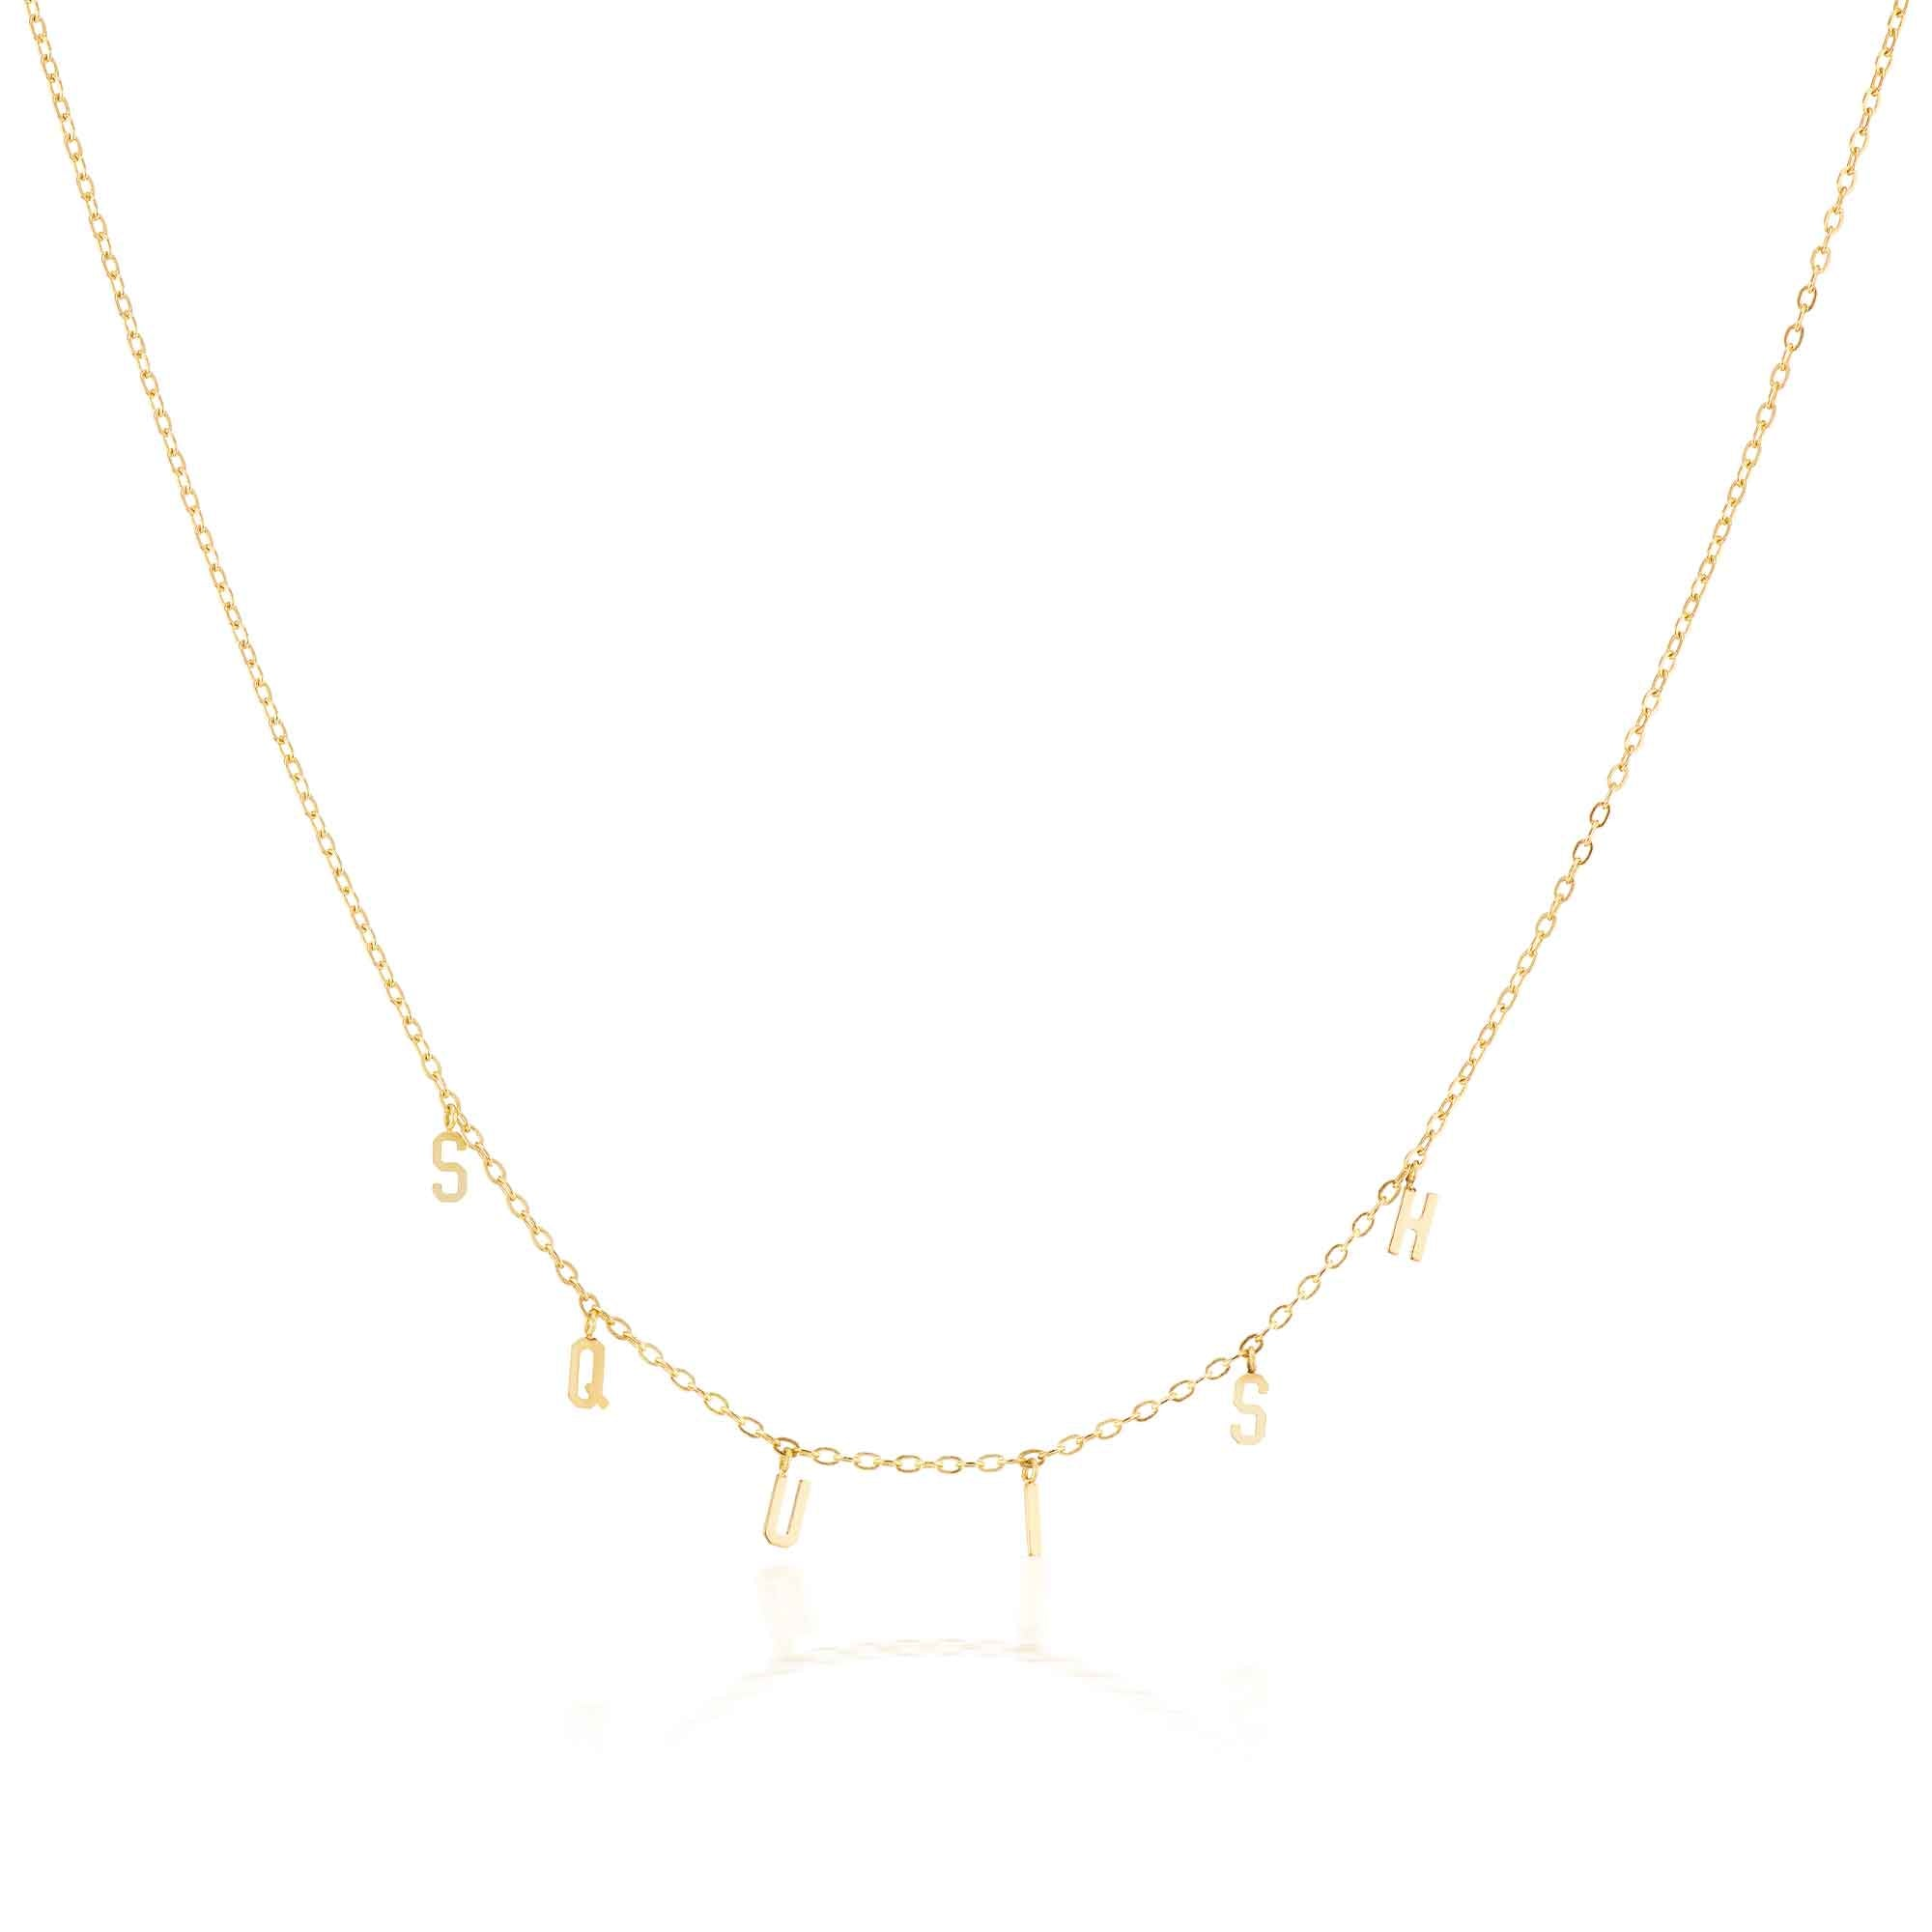 The Yellow Gold Squish Necklace